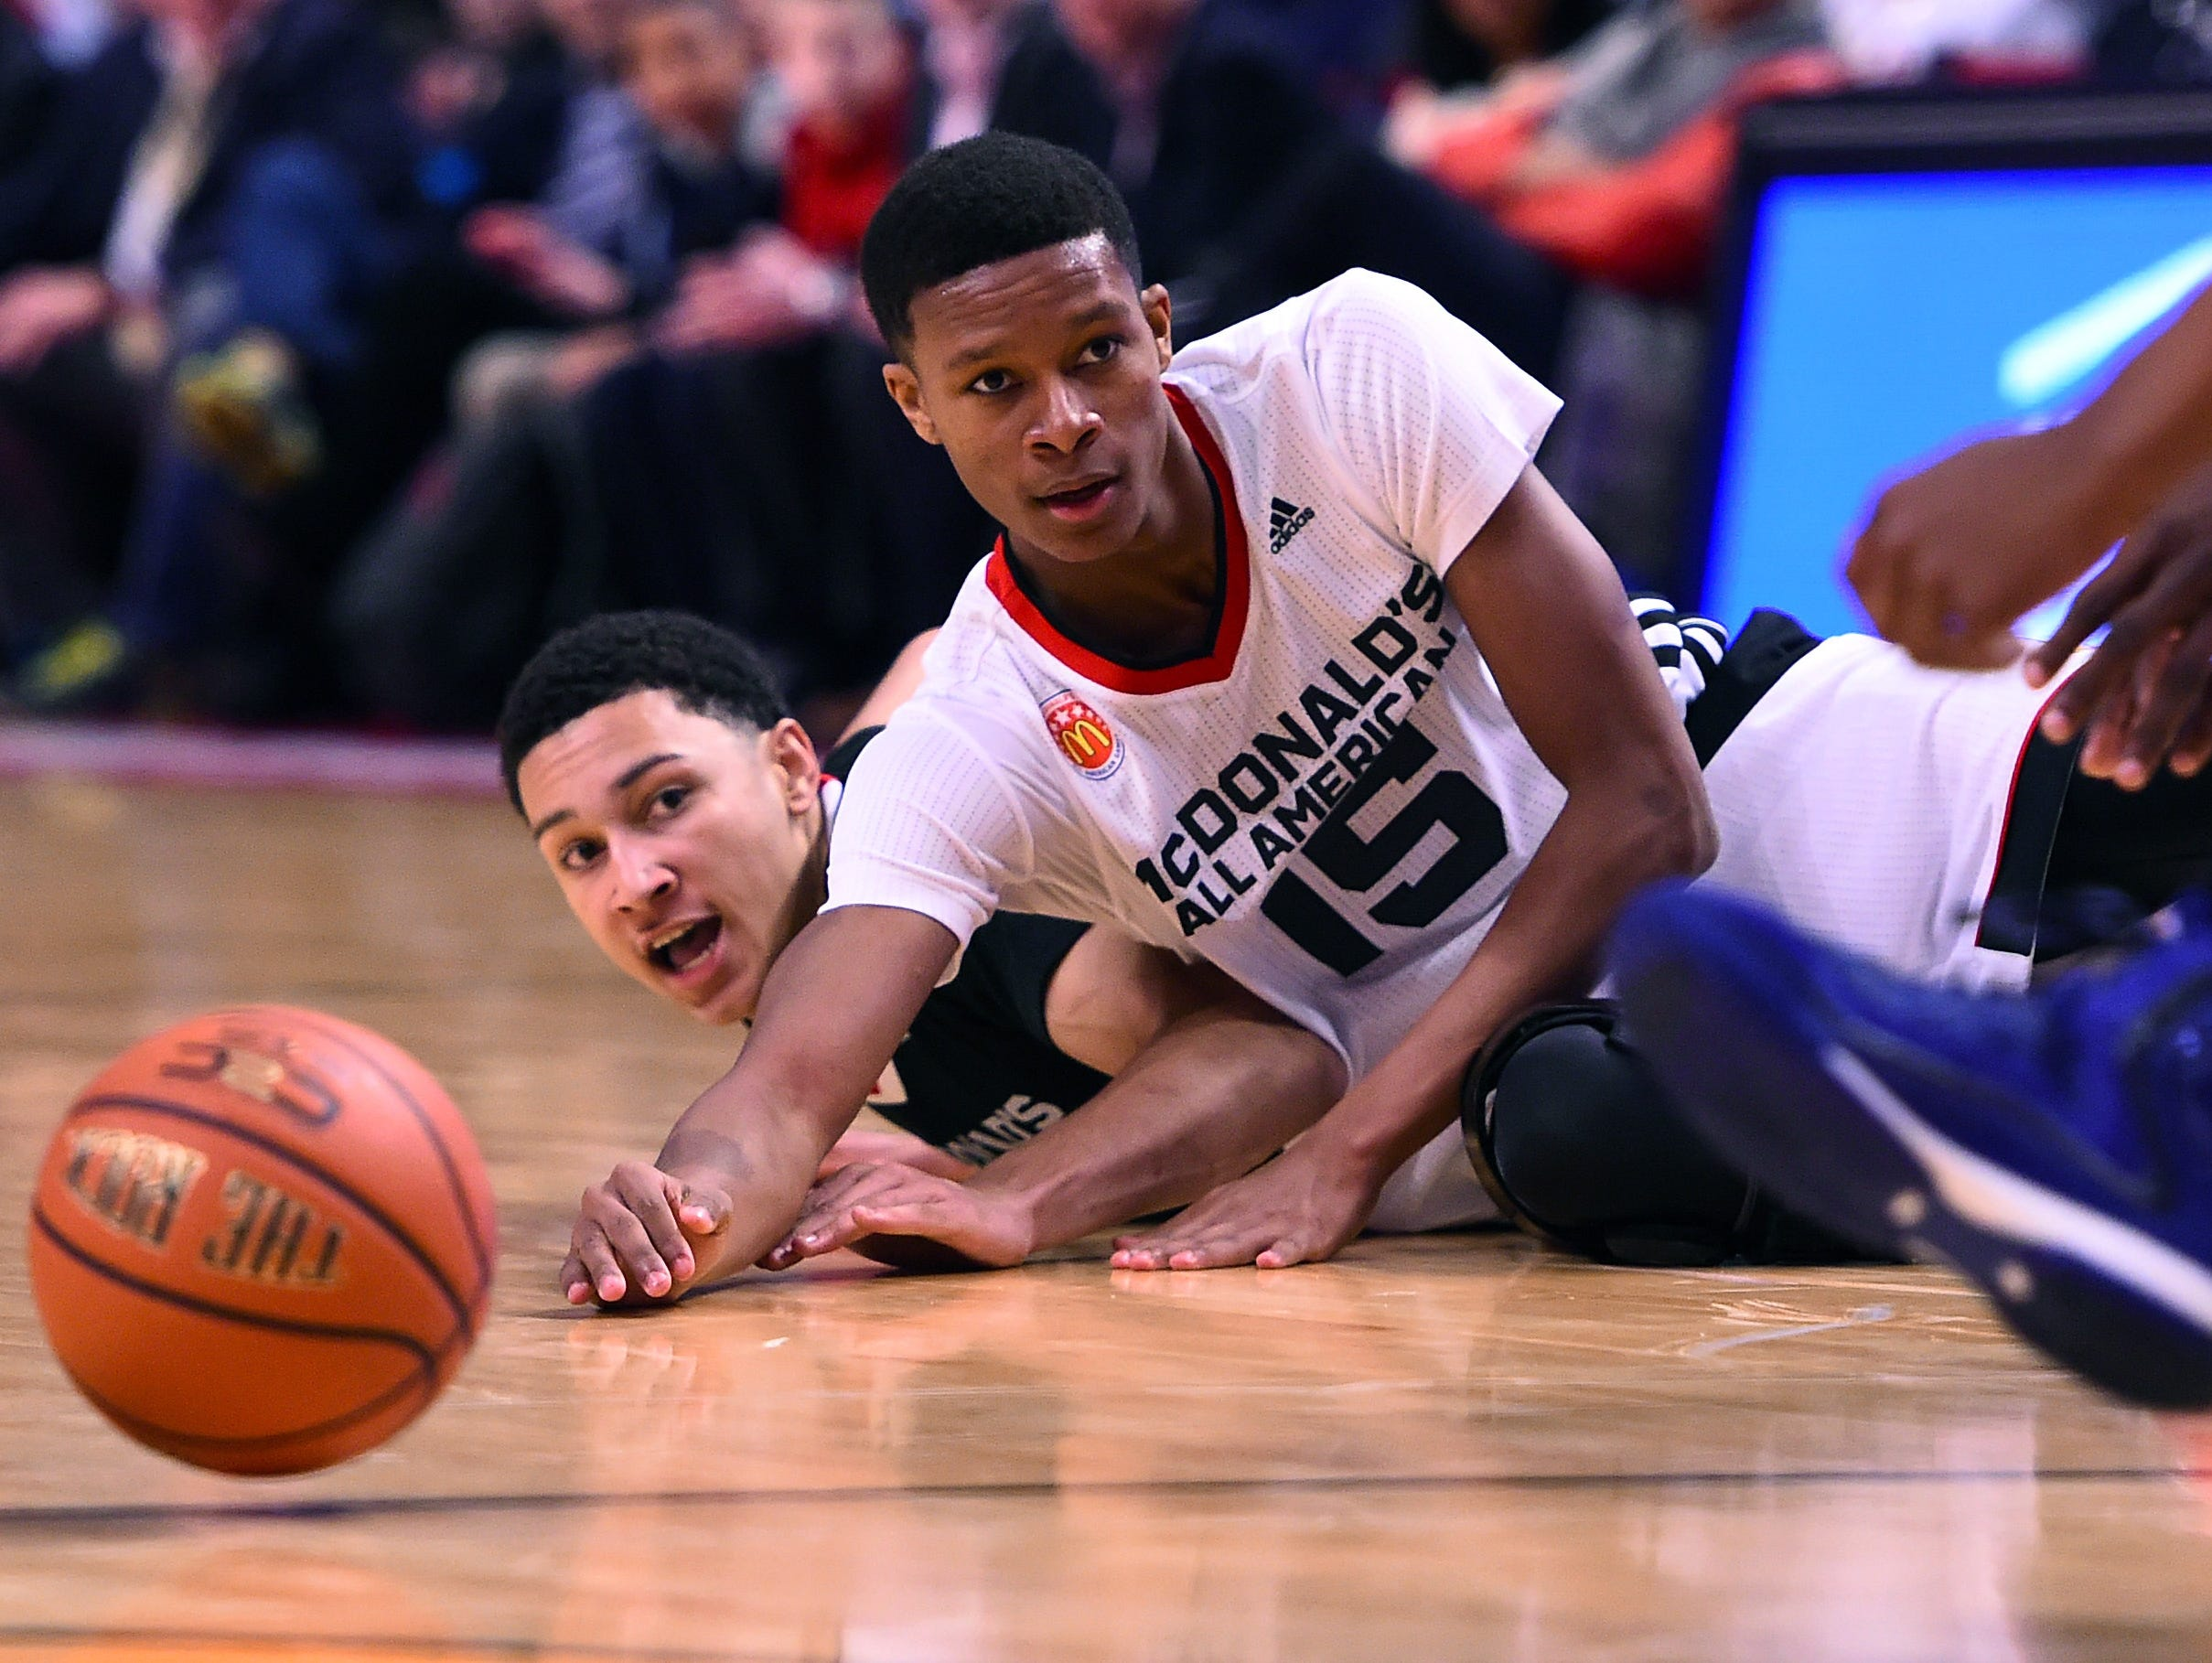 Apr 1, 2015; Chicago, IL, USA; McDonald's All American West guard PJ Dozier (15) dives for a loose ball against the McDonald's All American East during the second half at the United Center. Mandatory Credit: Mike DiNovo-USA TODAY Sports